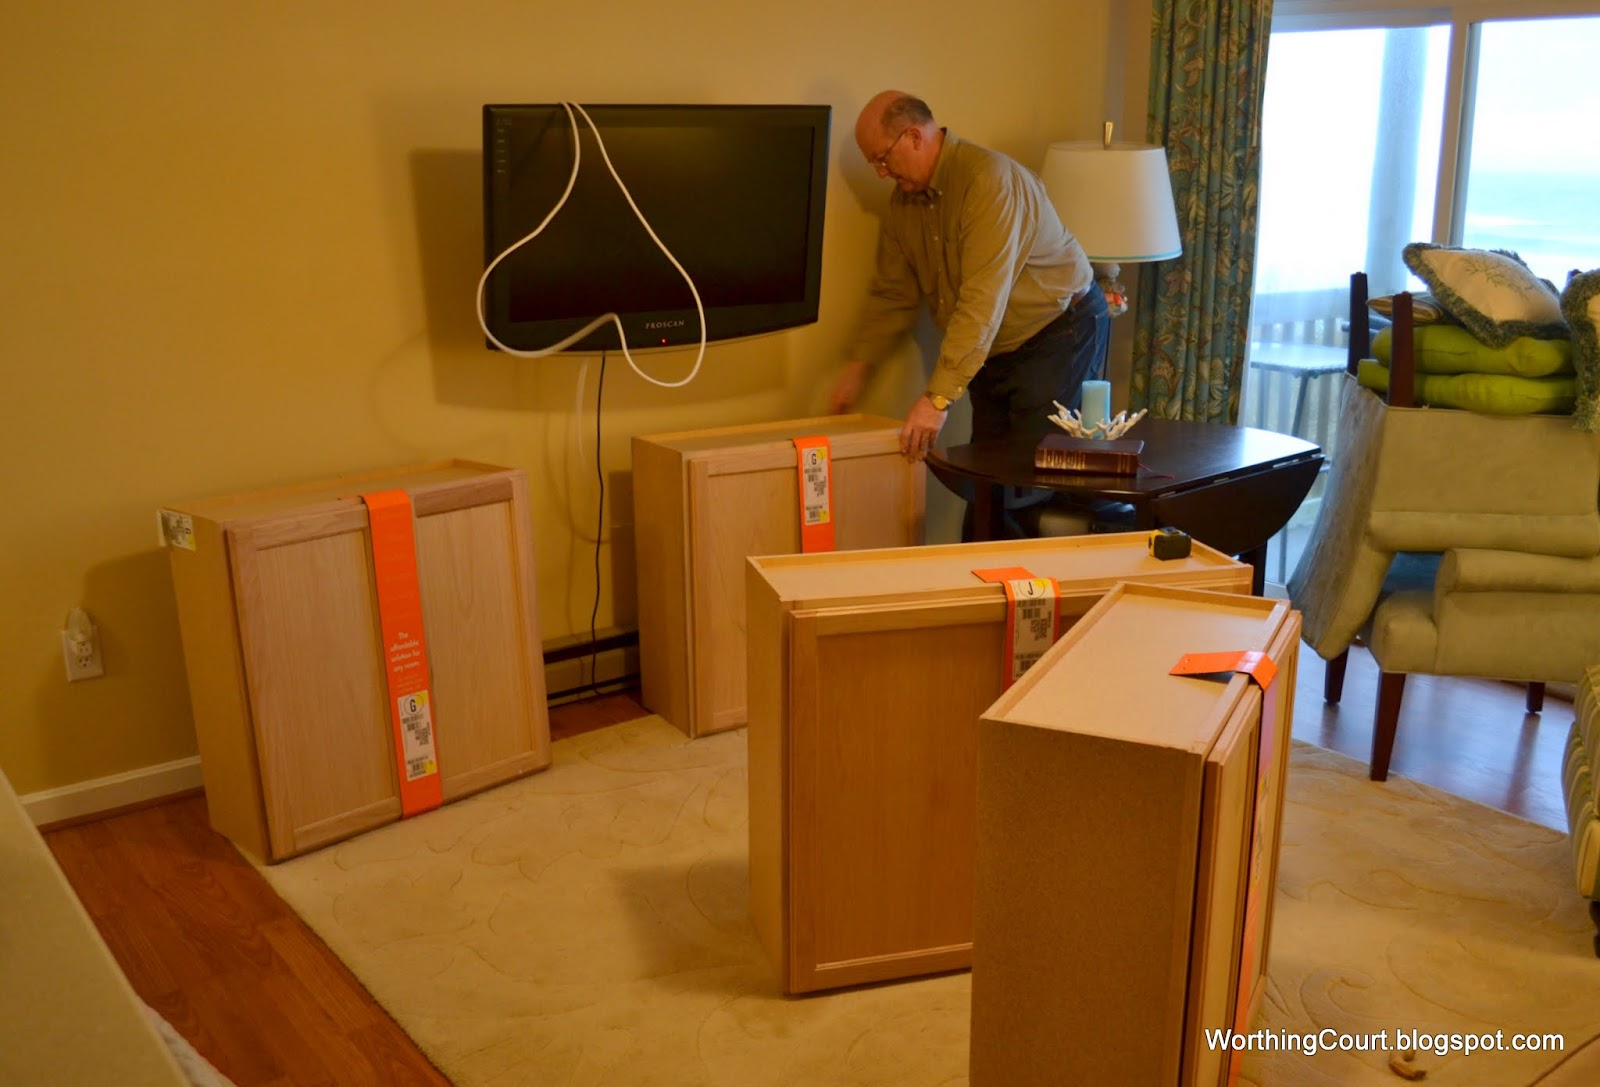 Superb img of How to build bookcases using kitchen cabinets for the base via  with #C73F04 color and 1600x1087 pixels